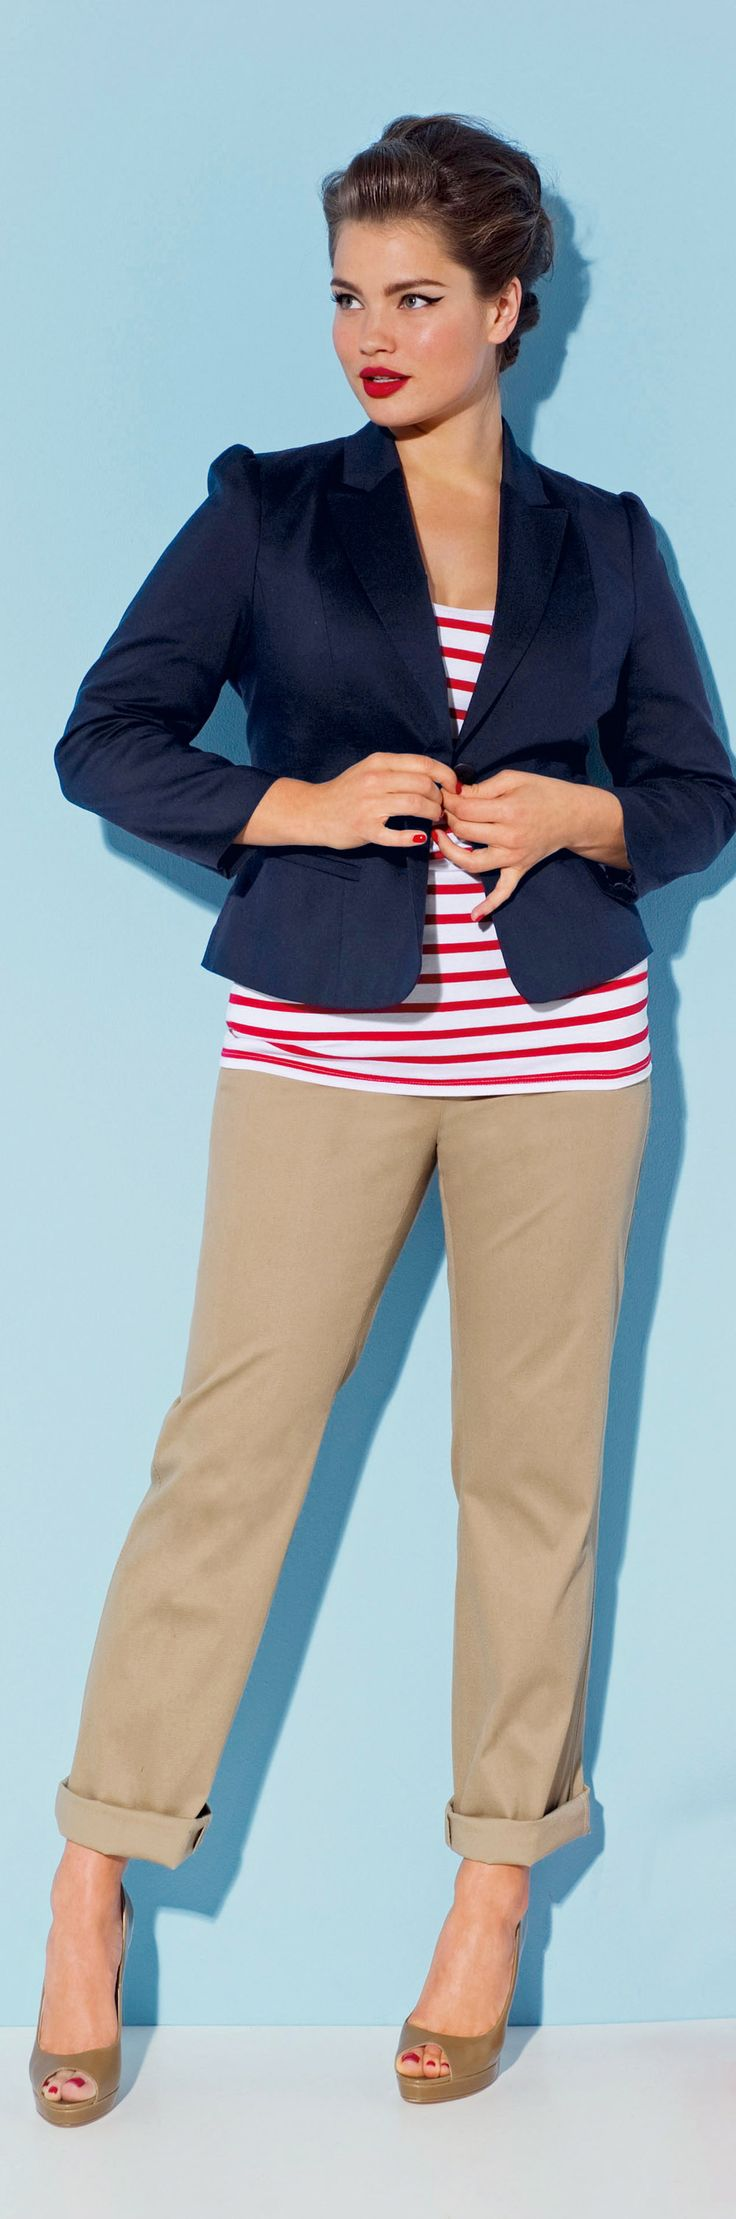 plus size nautical stripes - see more cruise wear at http://boomerinas.com/2011/12/womens-travel-cruise-wear-online-over-40-50/